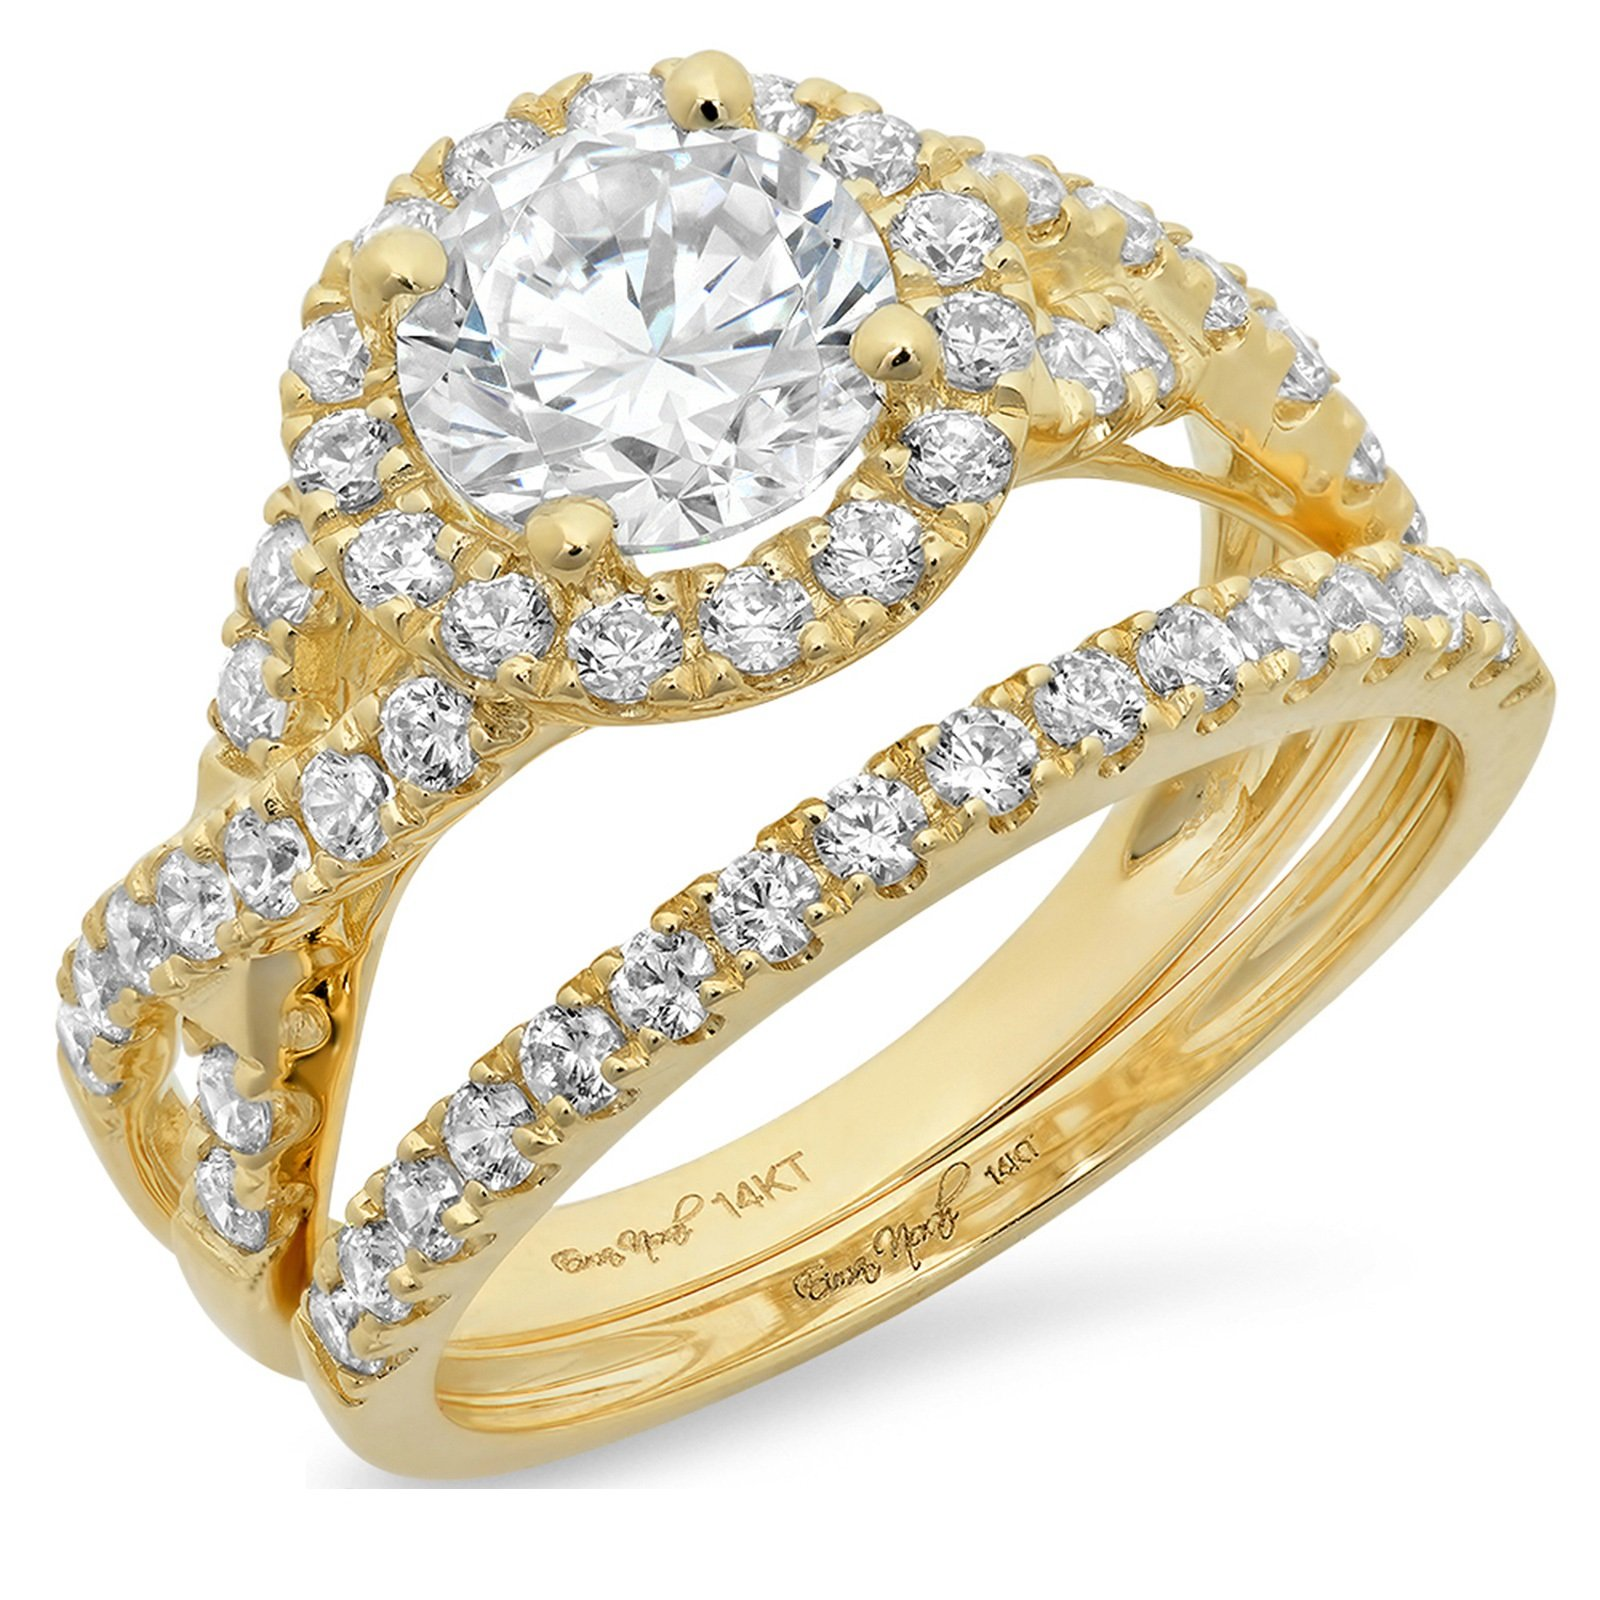 2.6 Ct Round Cut Pave Halo Engagement Wedding Bridal Anniversary Ring Band Set 14K Yellow Gold, Size 7, Clara Pucci